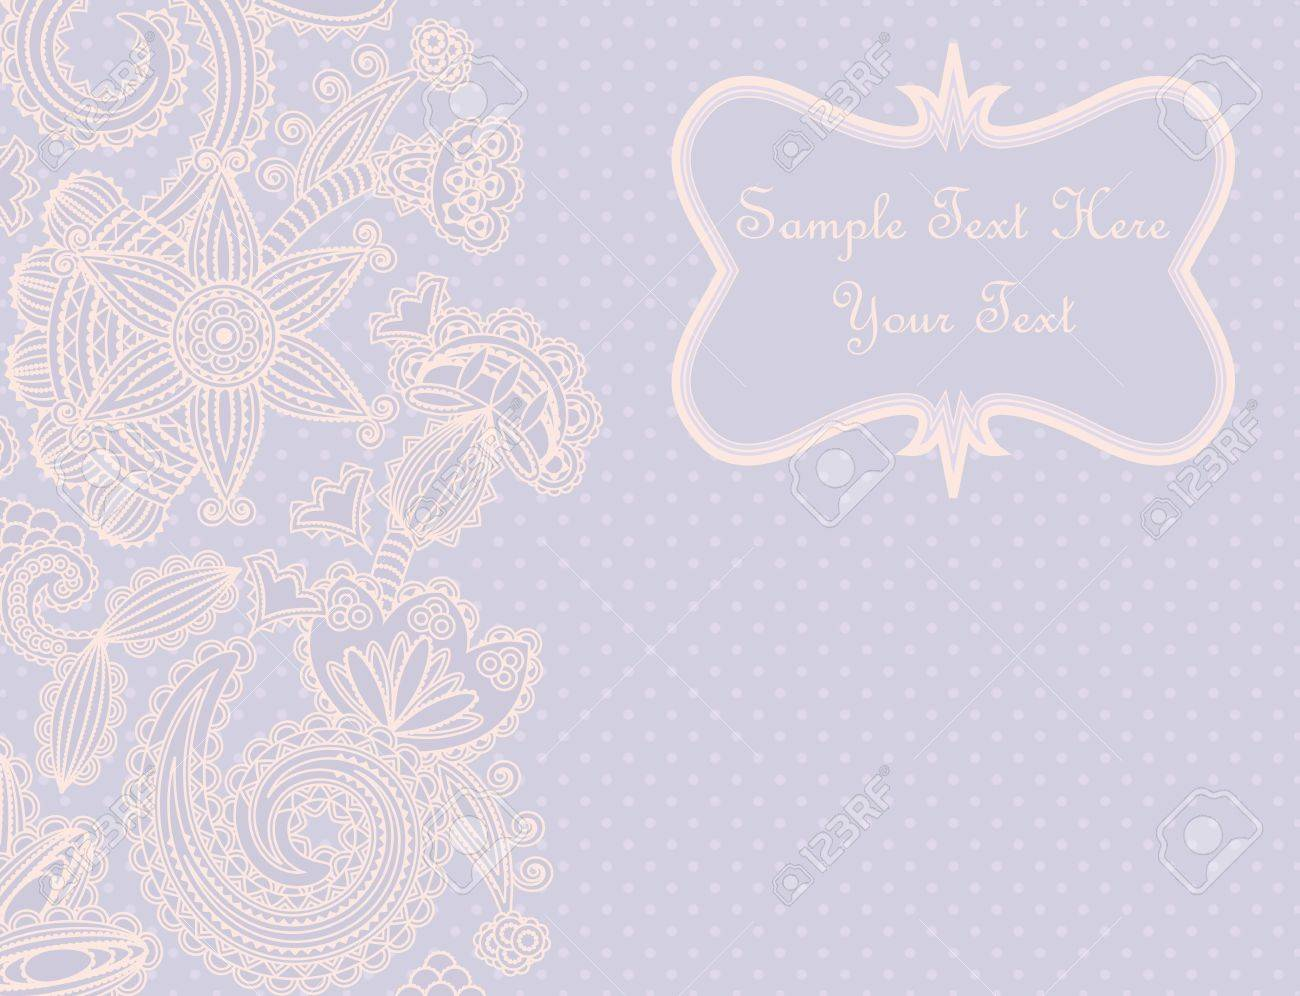 Greeting card with a floral pattern in pastel colors. Can be used as invitation, album cover, etc. Stock Vector - 14396257